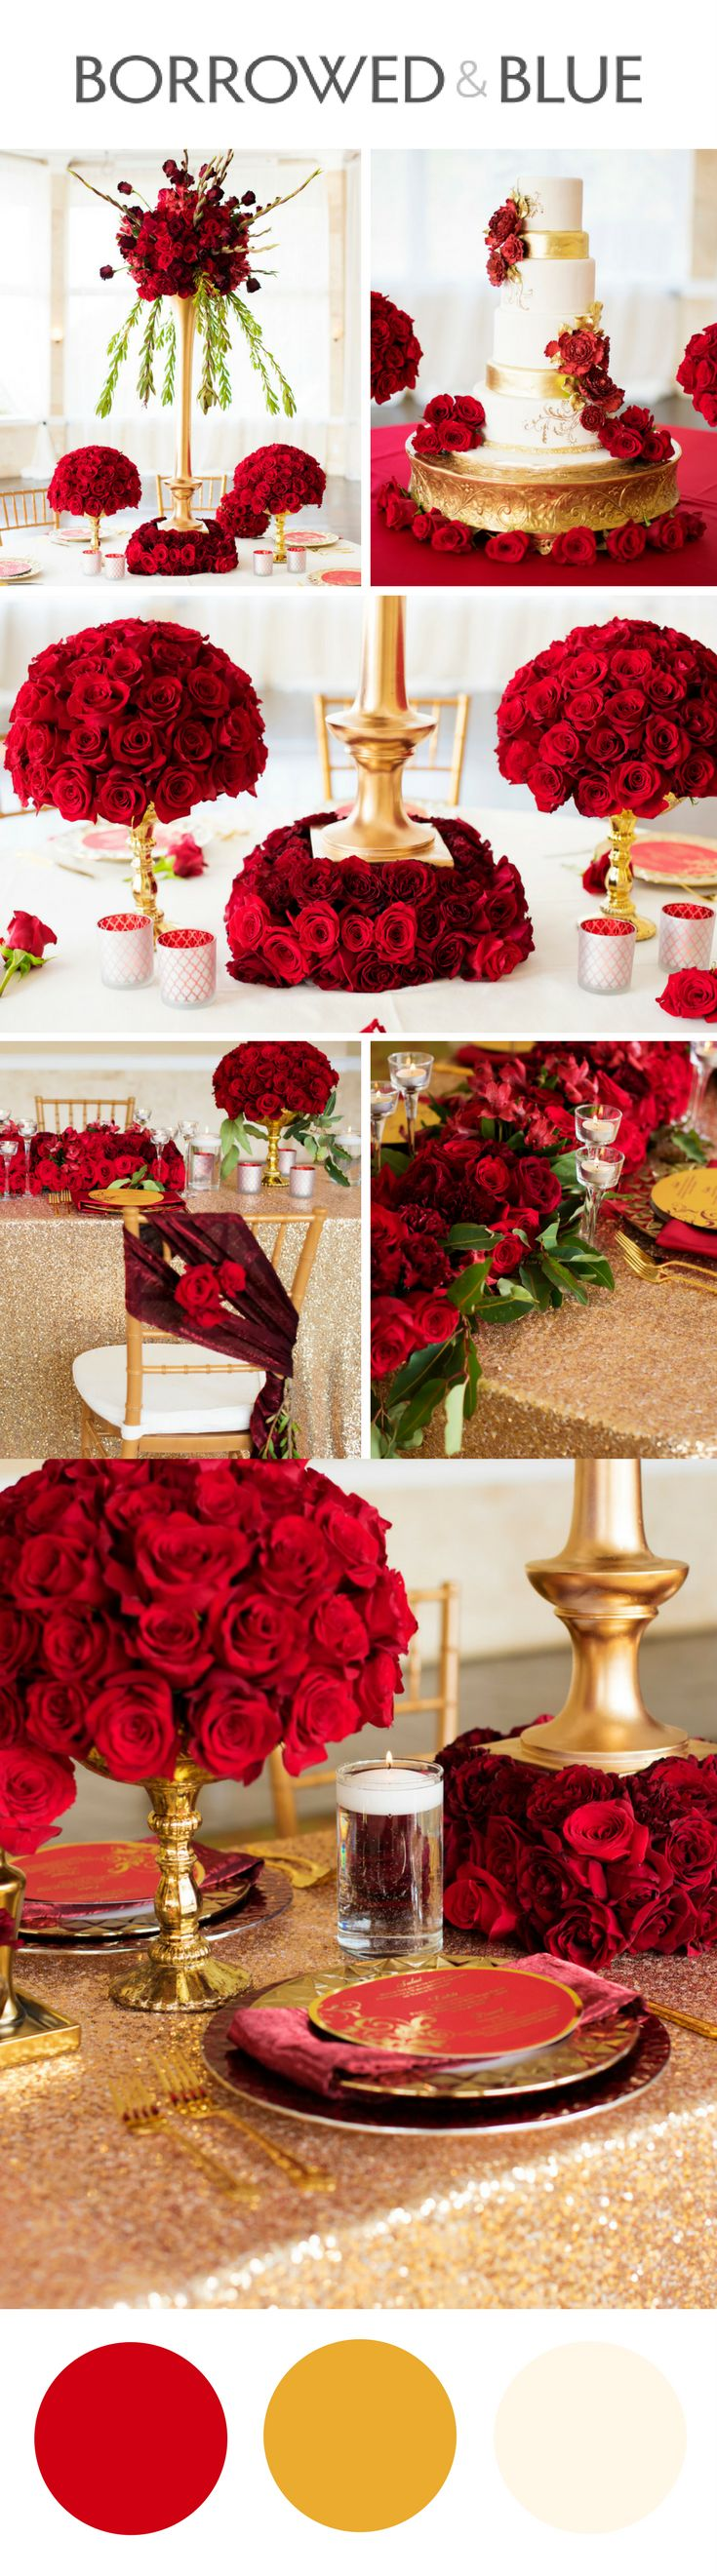 The 130 best Red Weddings images on Pinterest | Red wedding, Wedding ...